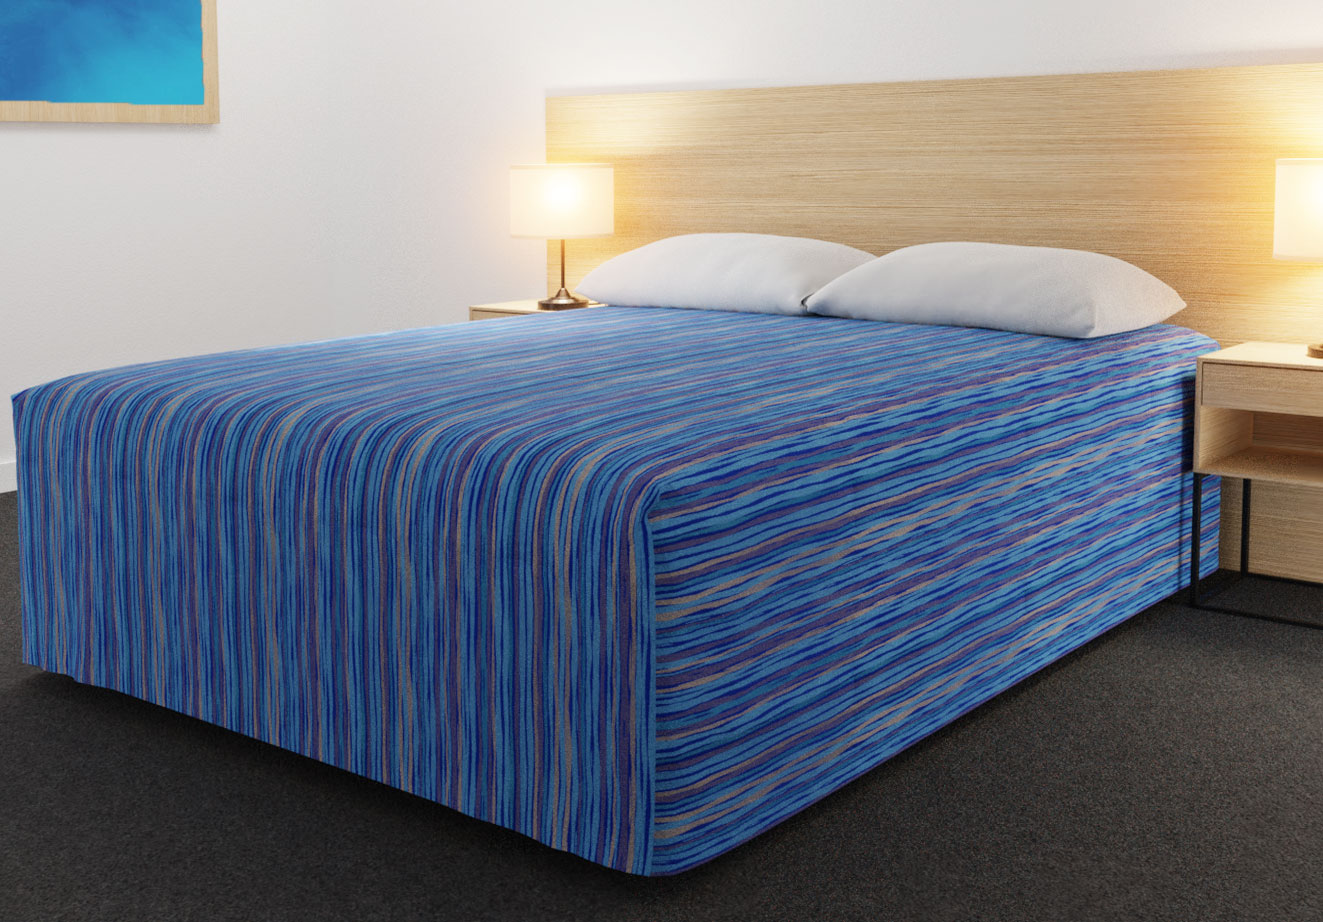 Practical Fitted Bed Cover - Full Drop - Flat Top Style - Malibu Aqua Gold